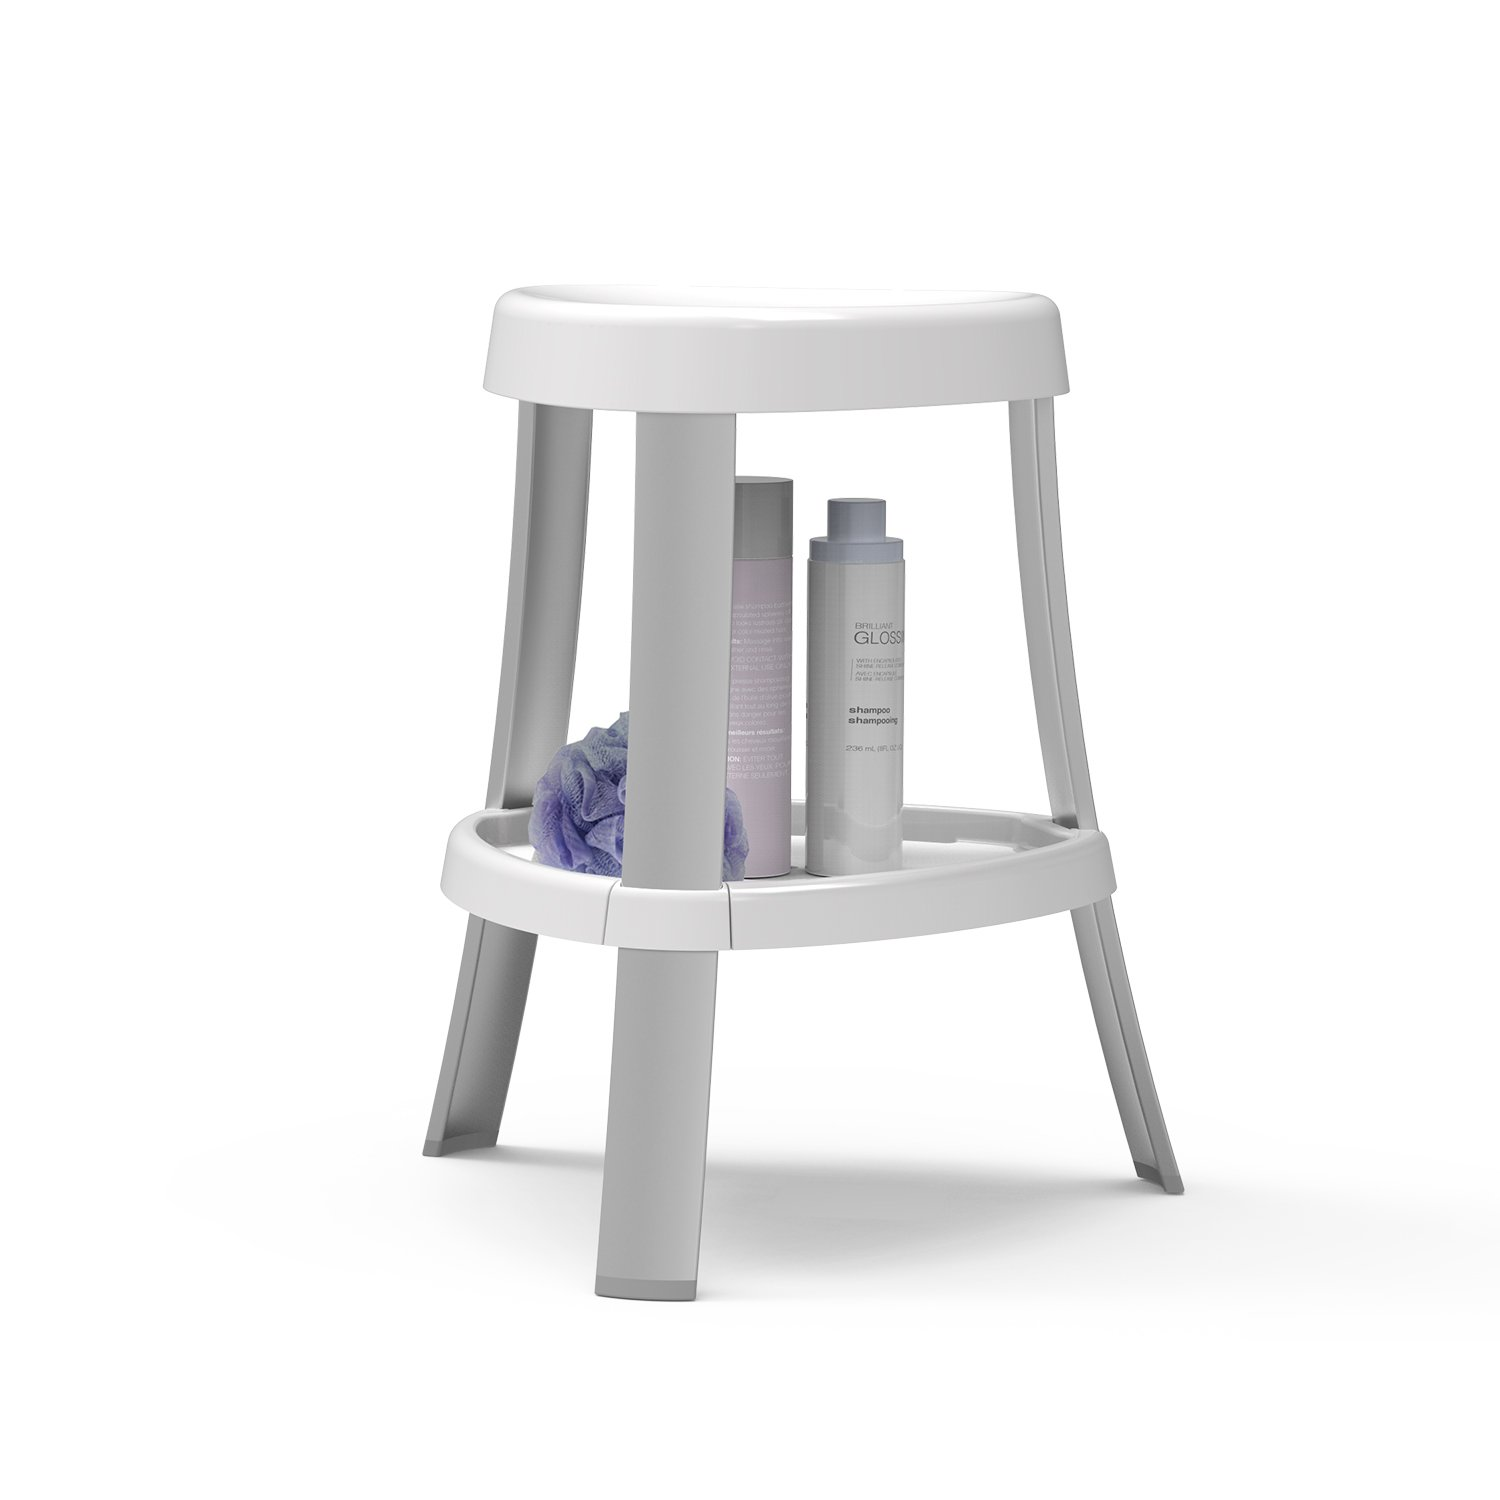 White Better Living Products 70061 Spa Shower Seat with Shelf